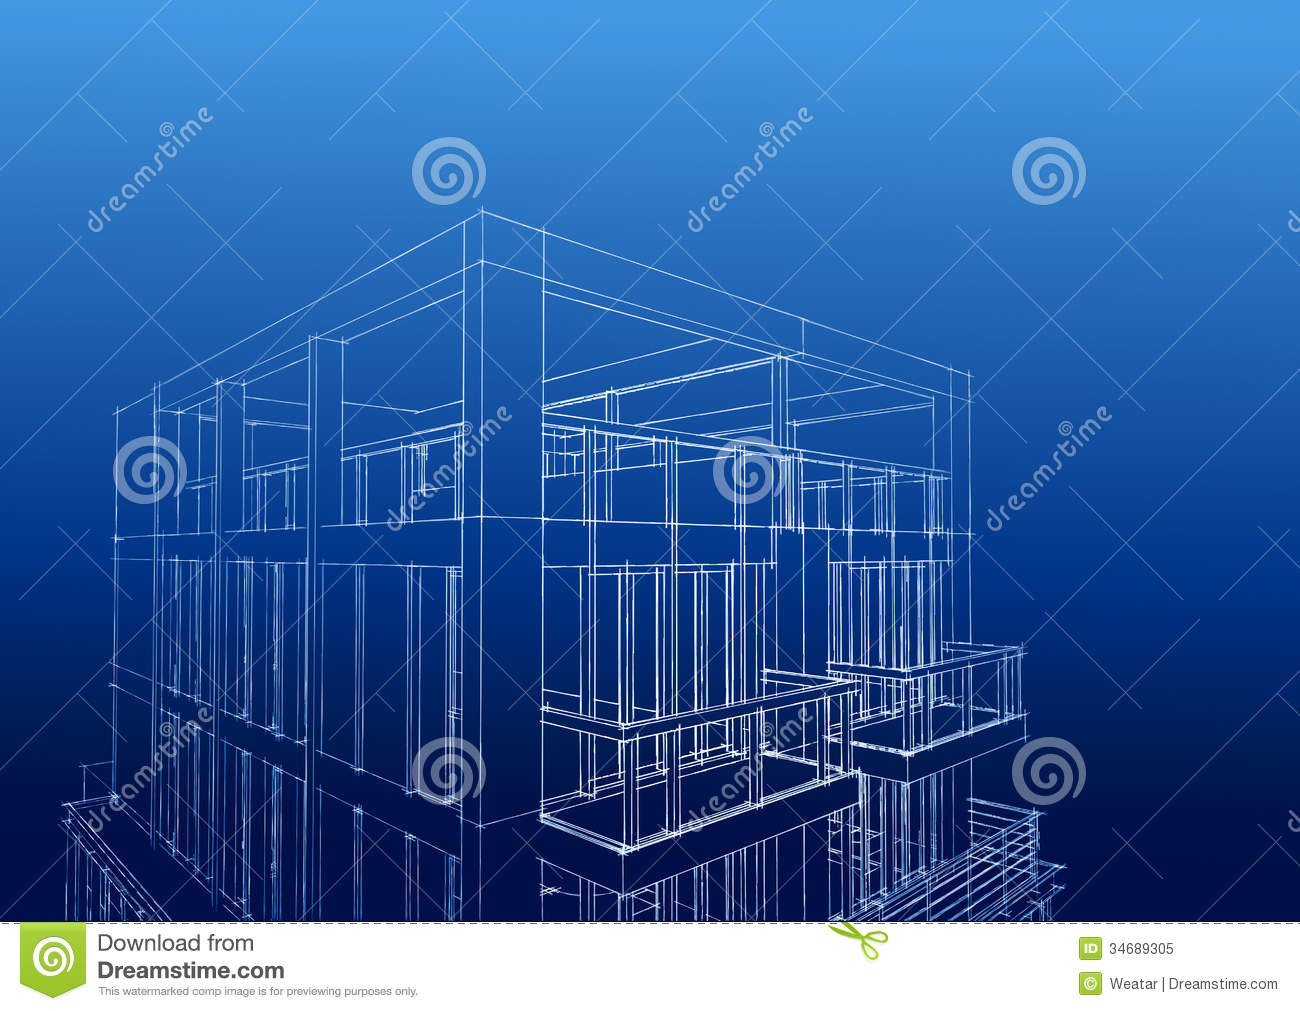 Wireframe Of Contemporary 3 Story Housedownload A Comp Save T Royalty Free Stock Photo Image